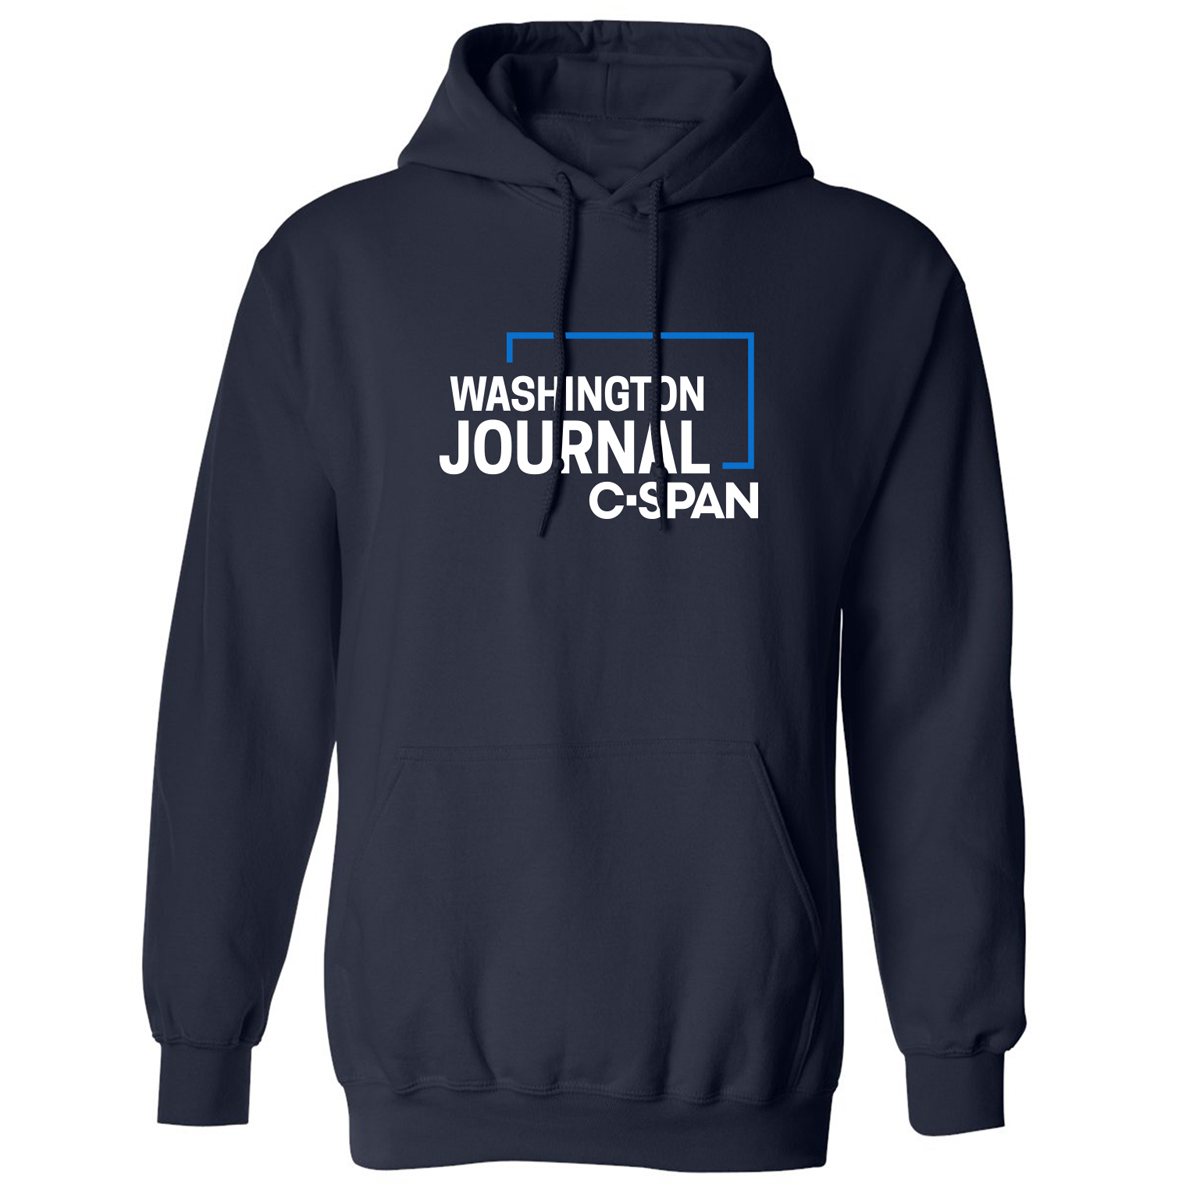 C-SPAN Washington Journal Pullover Hoodie